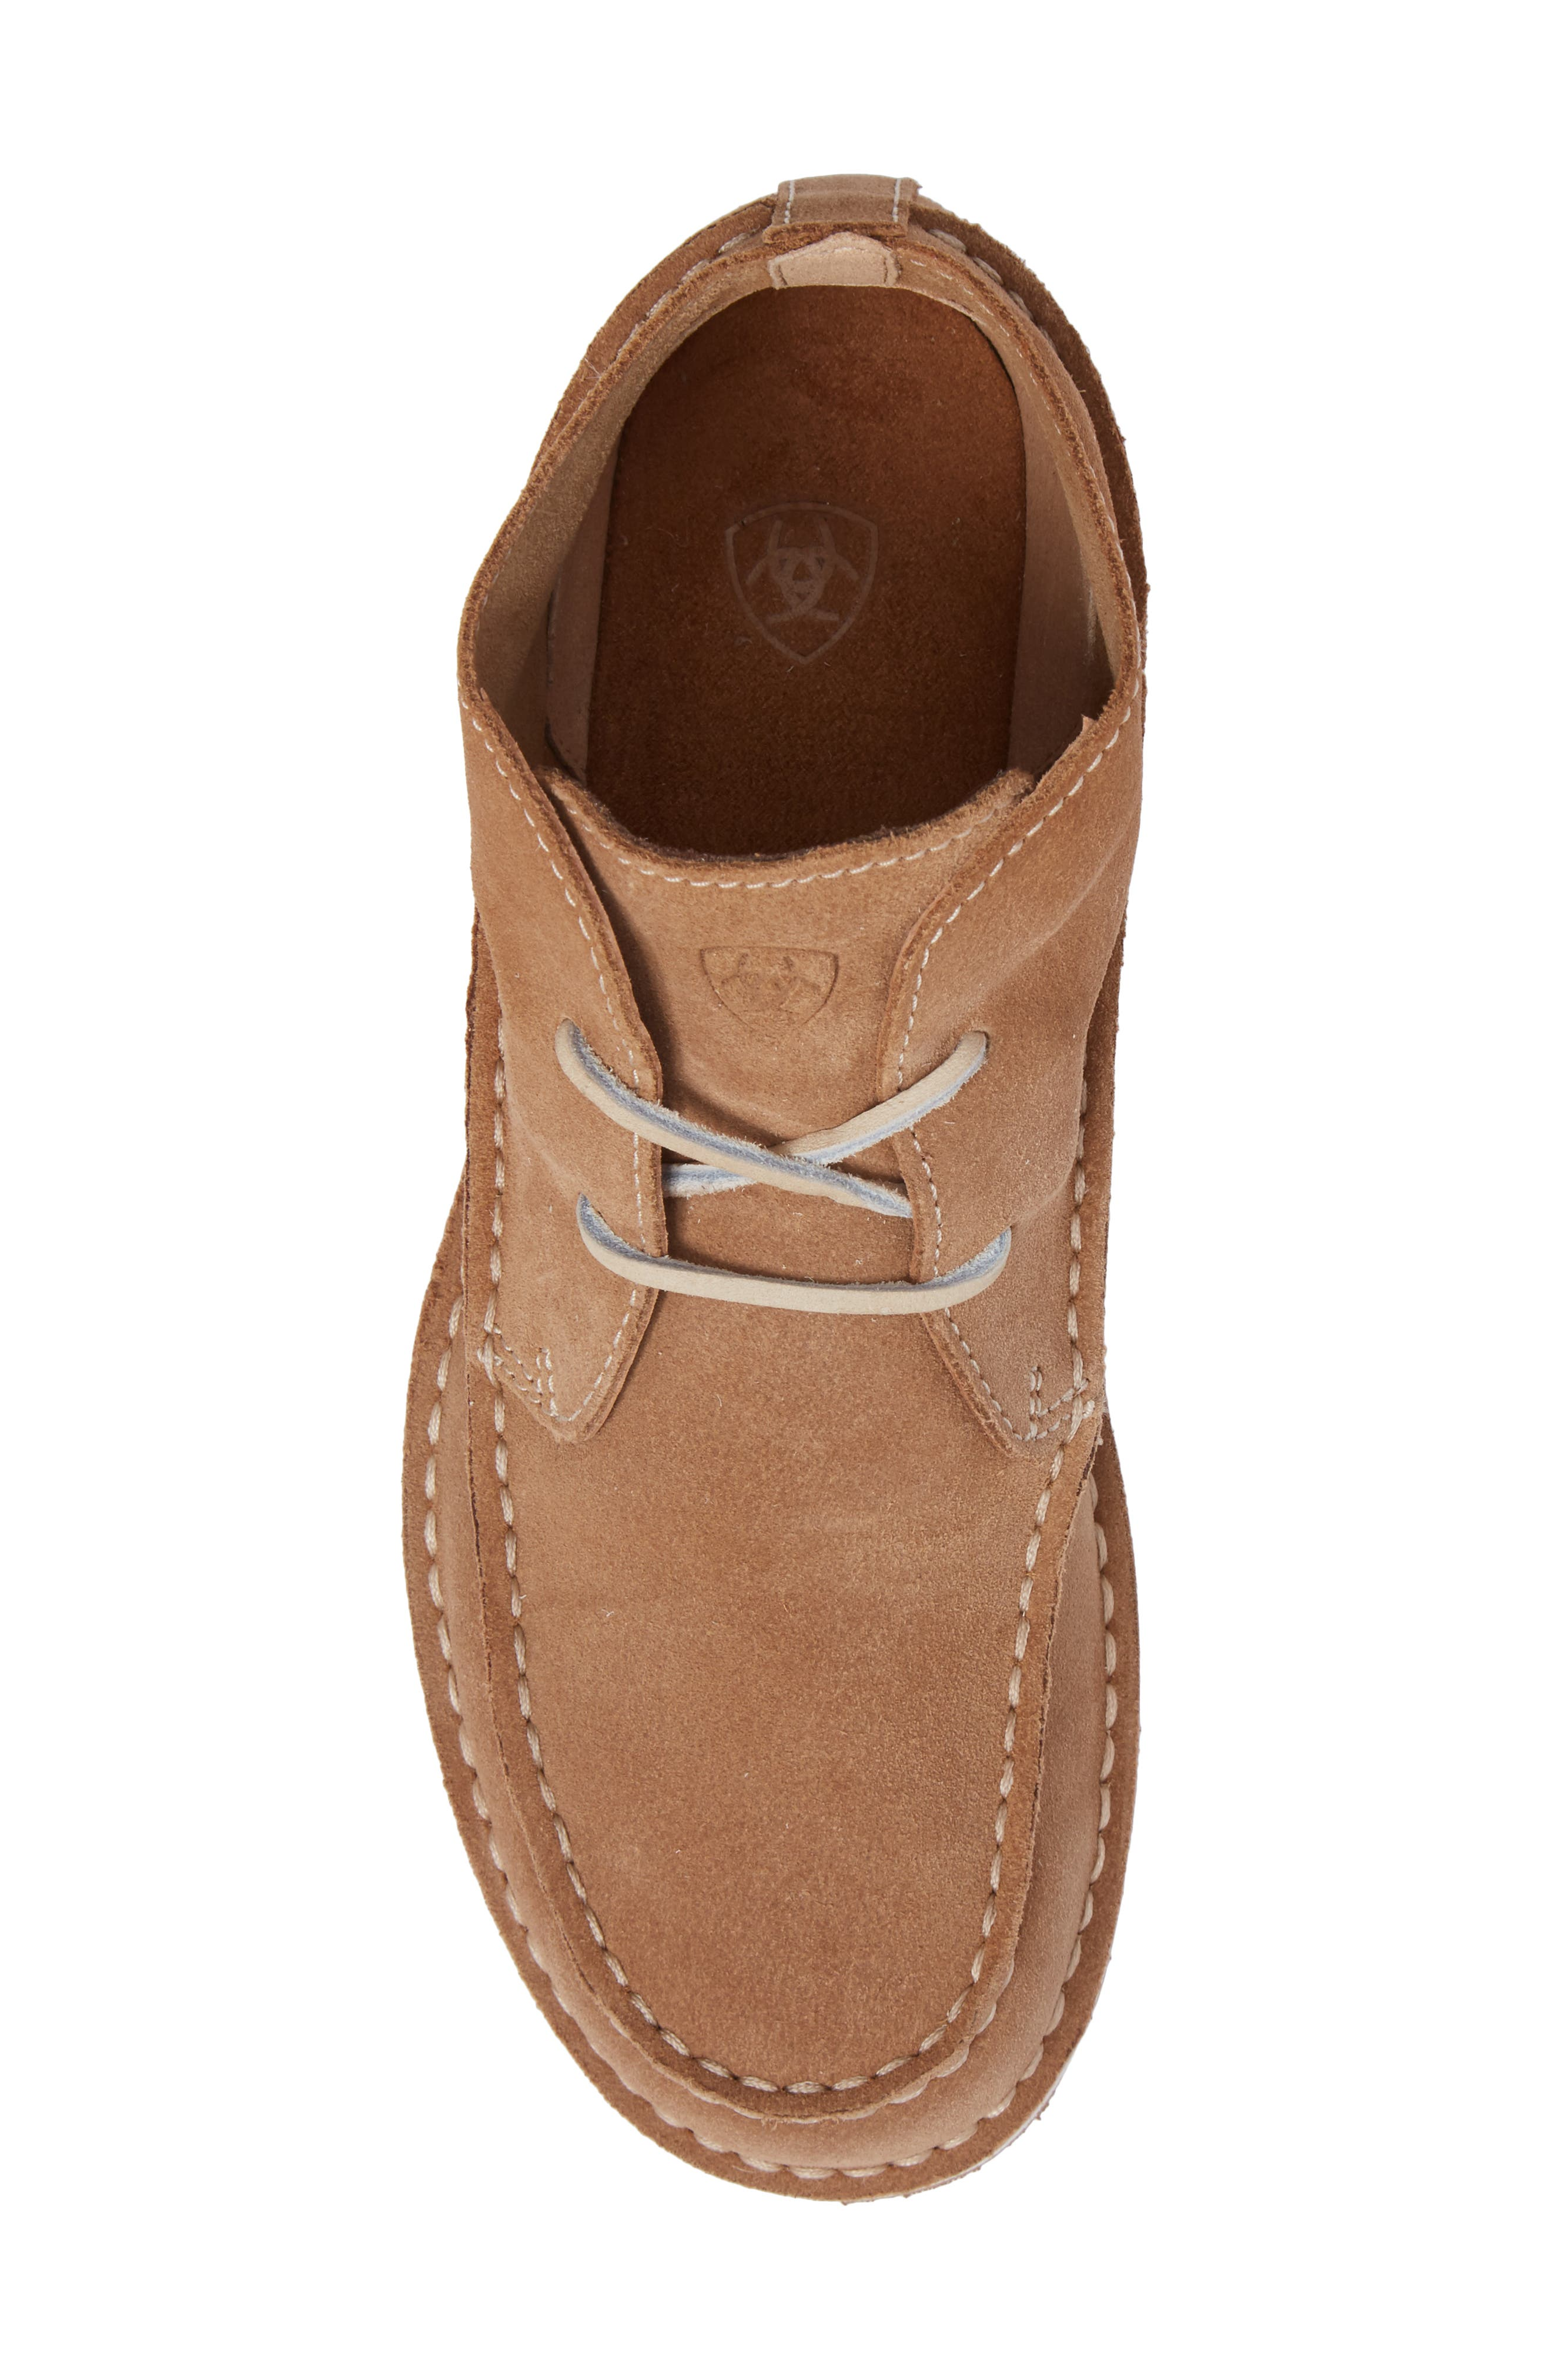 Cruiser Chukka Boot,                             Alternate thumbnail 4, color,                             Lace Dirty Taupe Suede